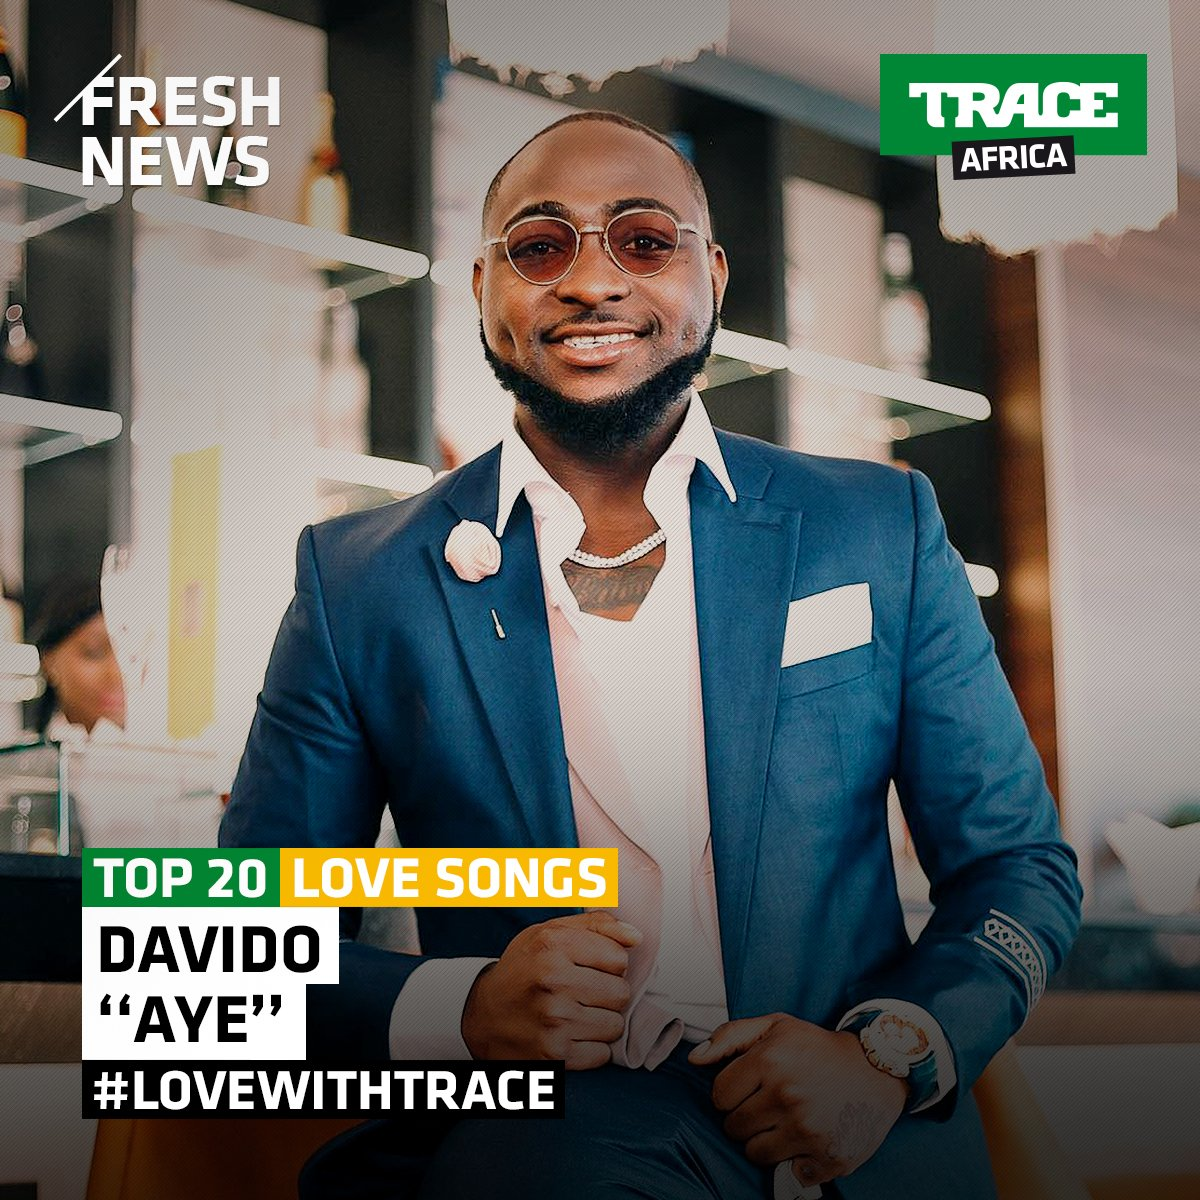 TRACEAfrica_ on Twitter: